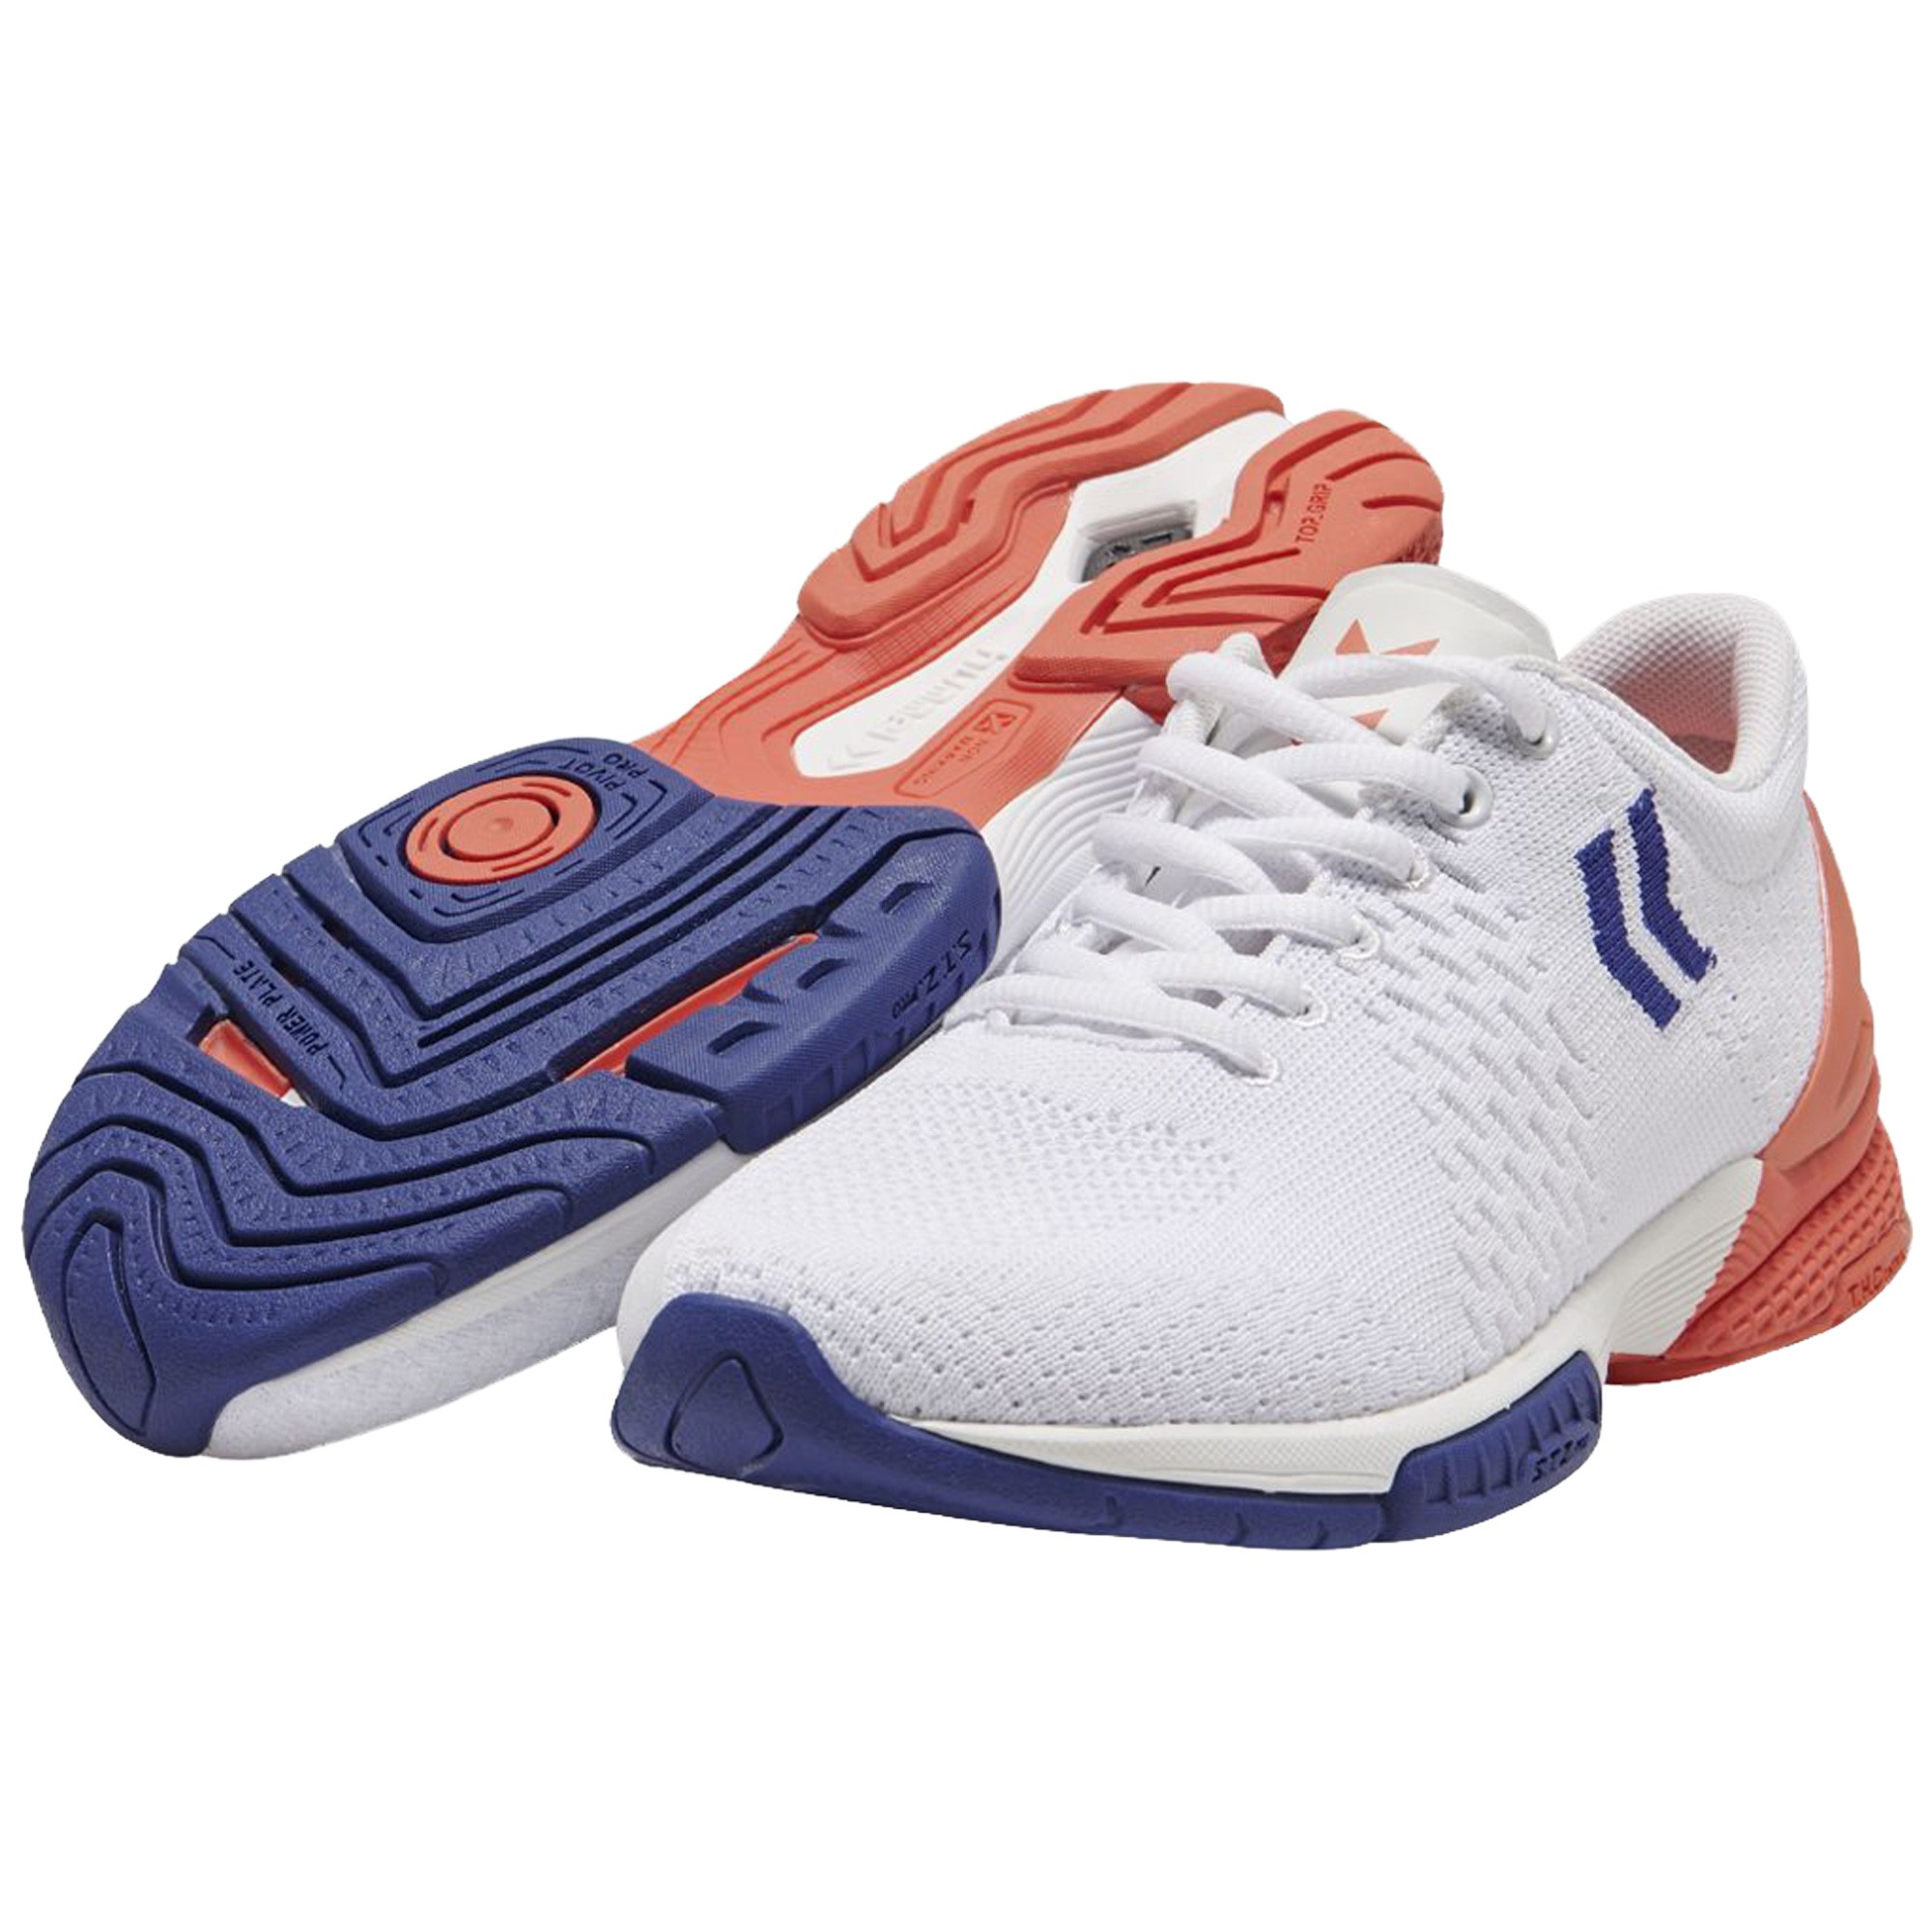 super popular first rate skate shoes Chaussures Engineered STZ Lady - Integral Handball